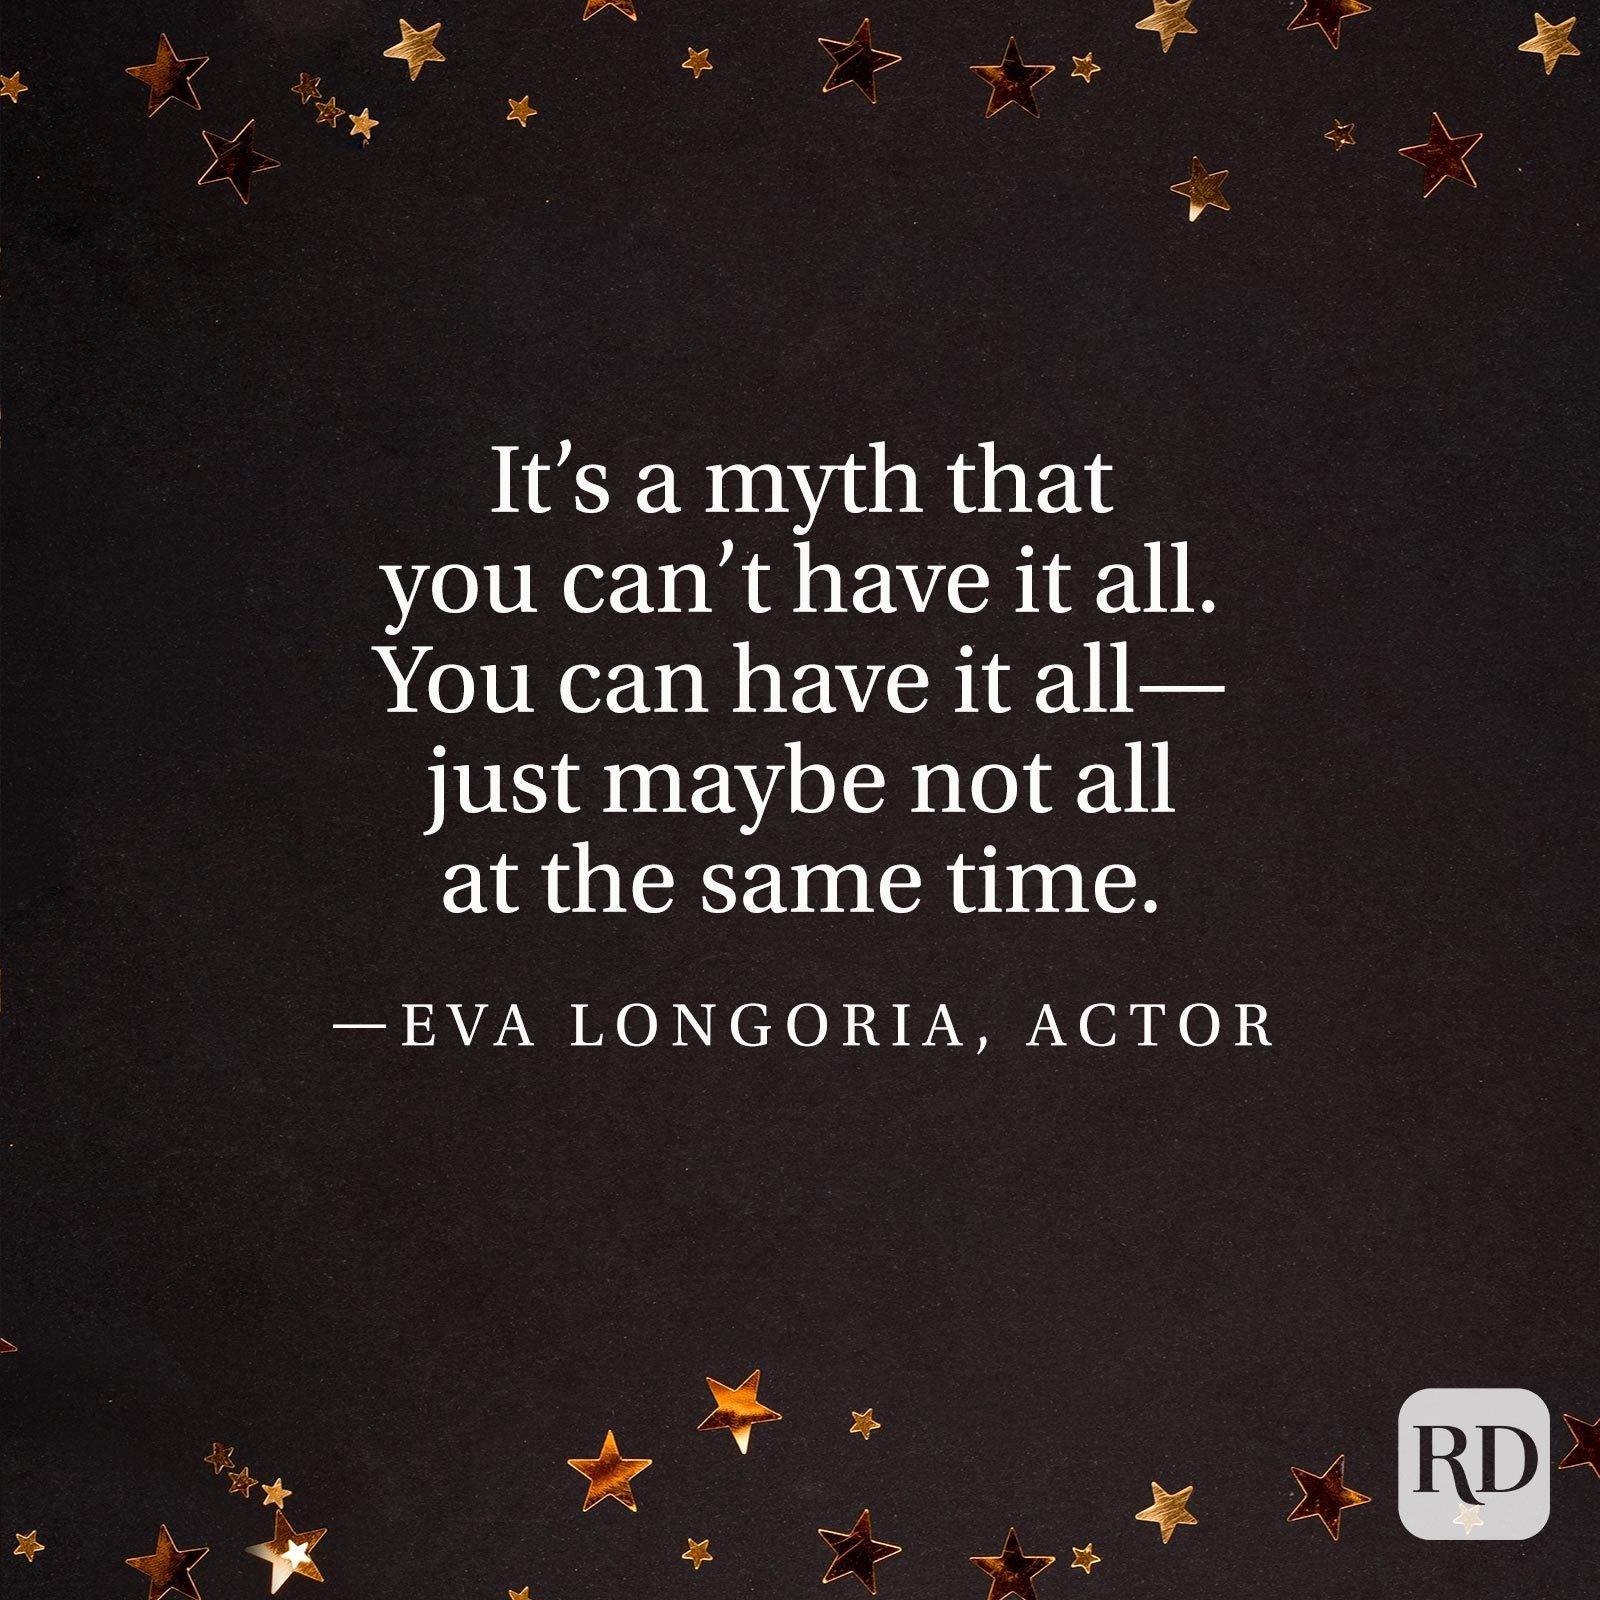 """""""It's a myth that you can't have it all. You can have it all—just maybe not all at the same time."""" —Eva Longoria, actor"""